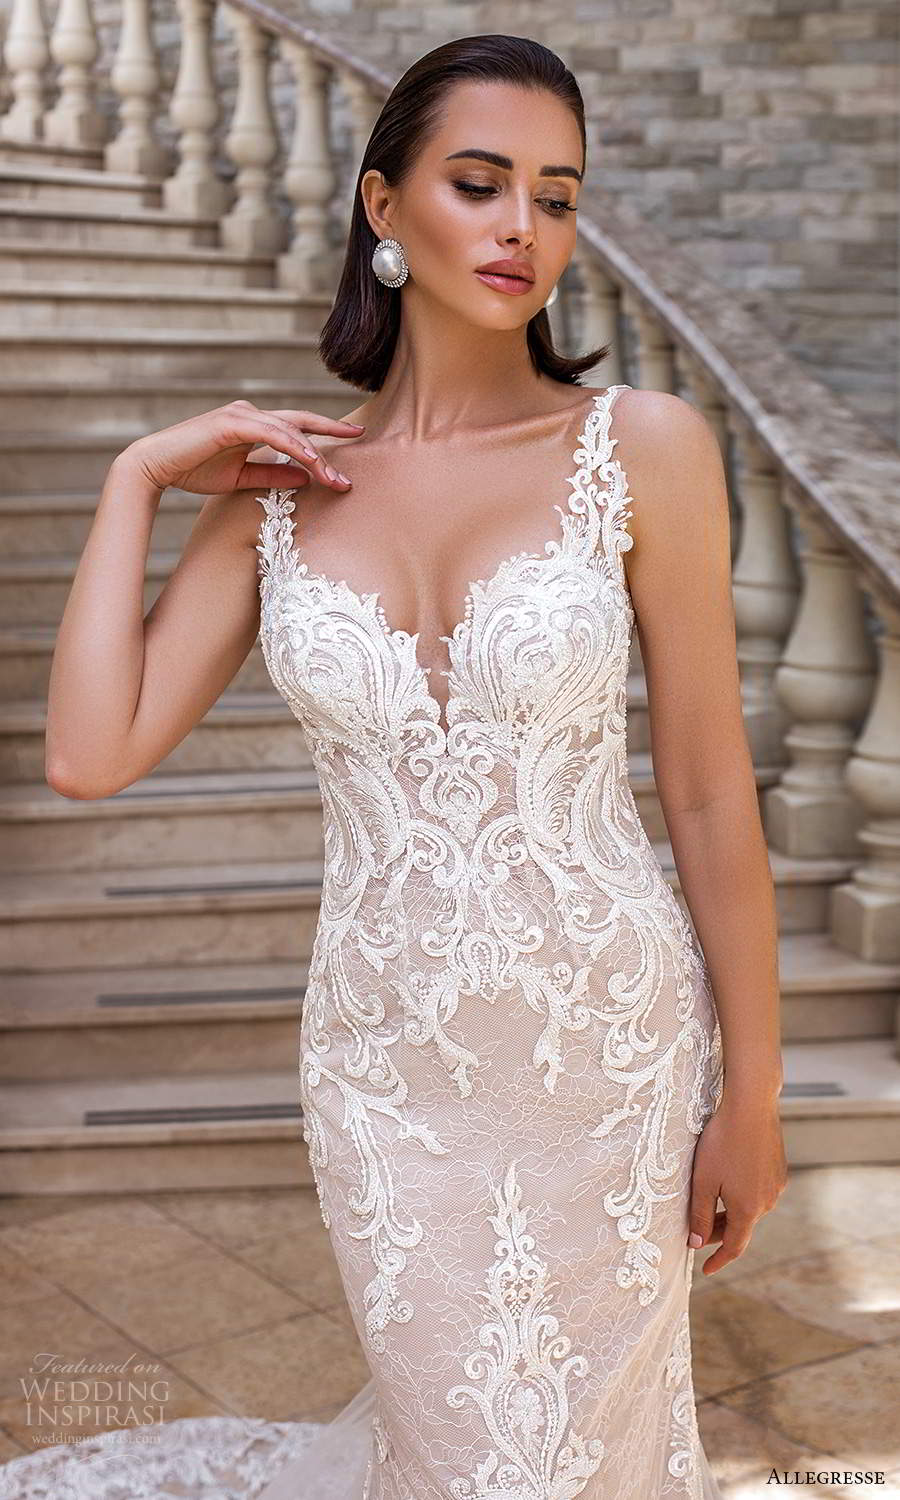 allegresse 2021 bridal sleeveless straps plunging sweetheart neckline fully embellished lace fit flare mermaid wedding dress chapel train blush scoop back (8) zv